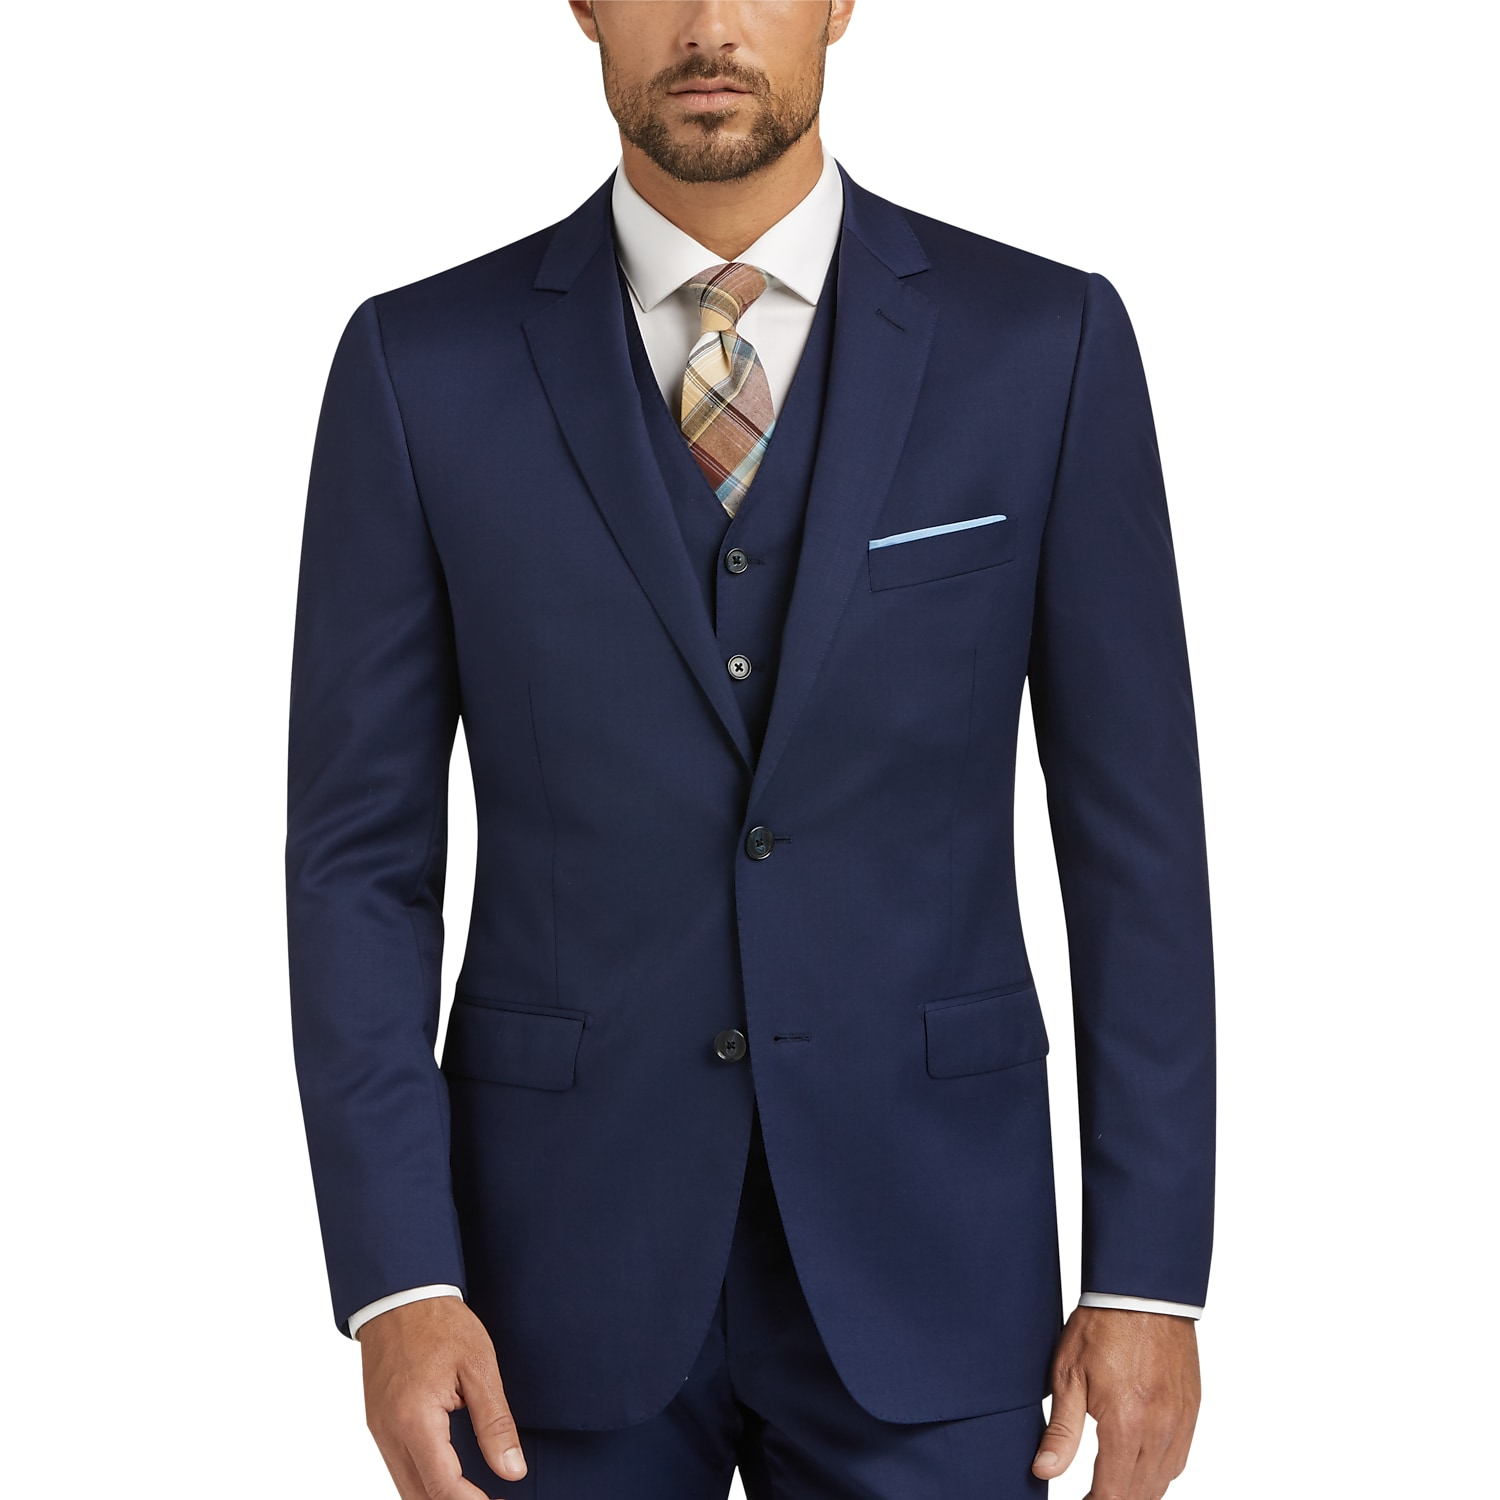 Men's 3 Piece Vested Suits, Suits with Vests | Men's Wearhouse